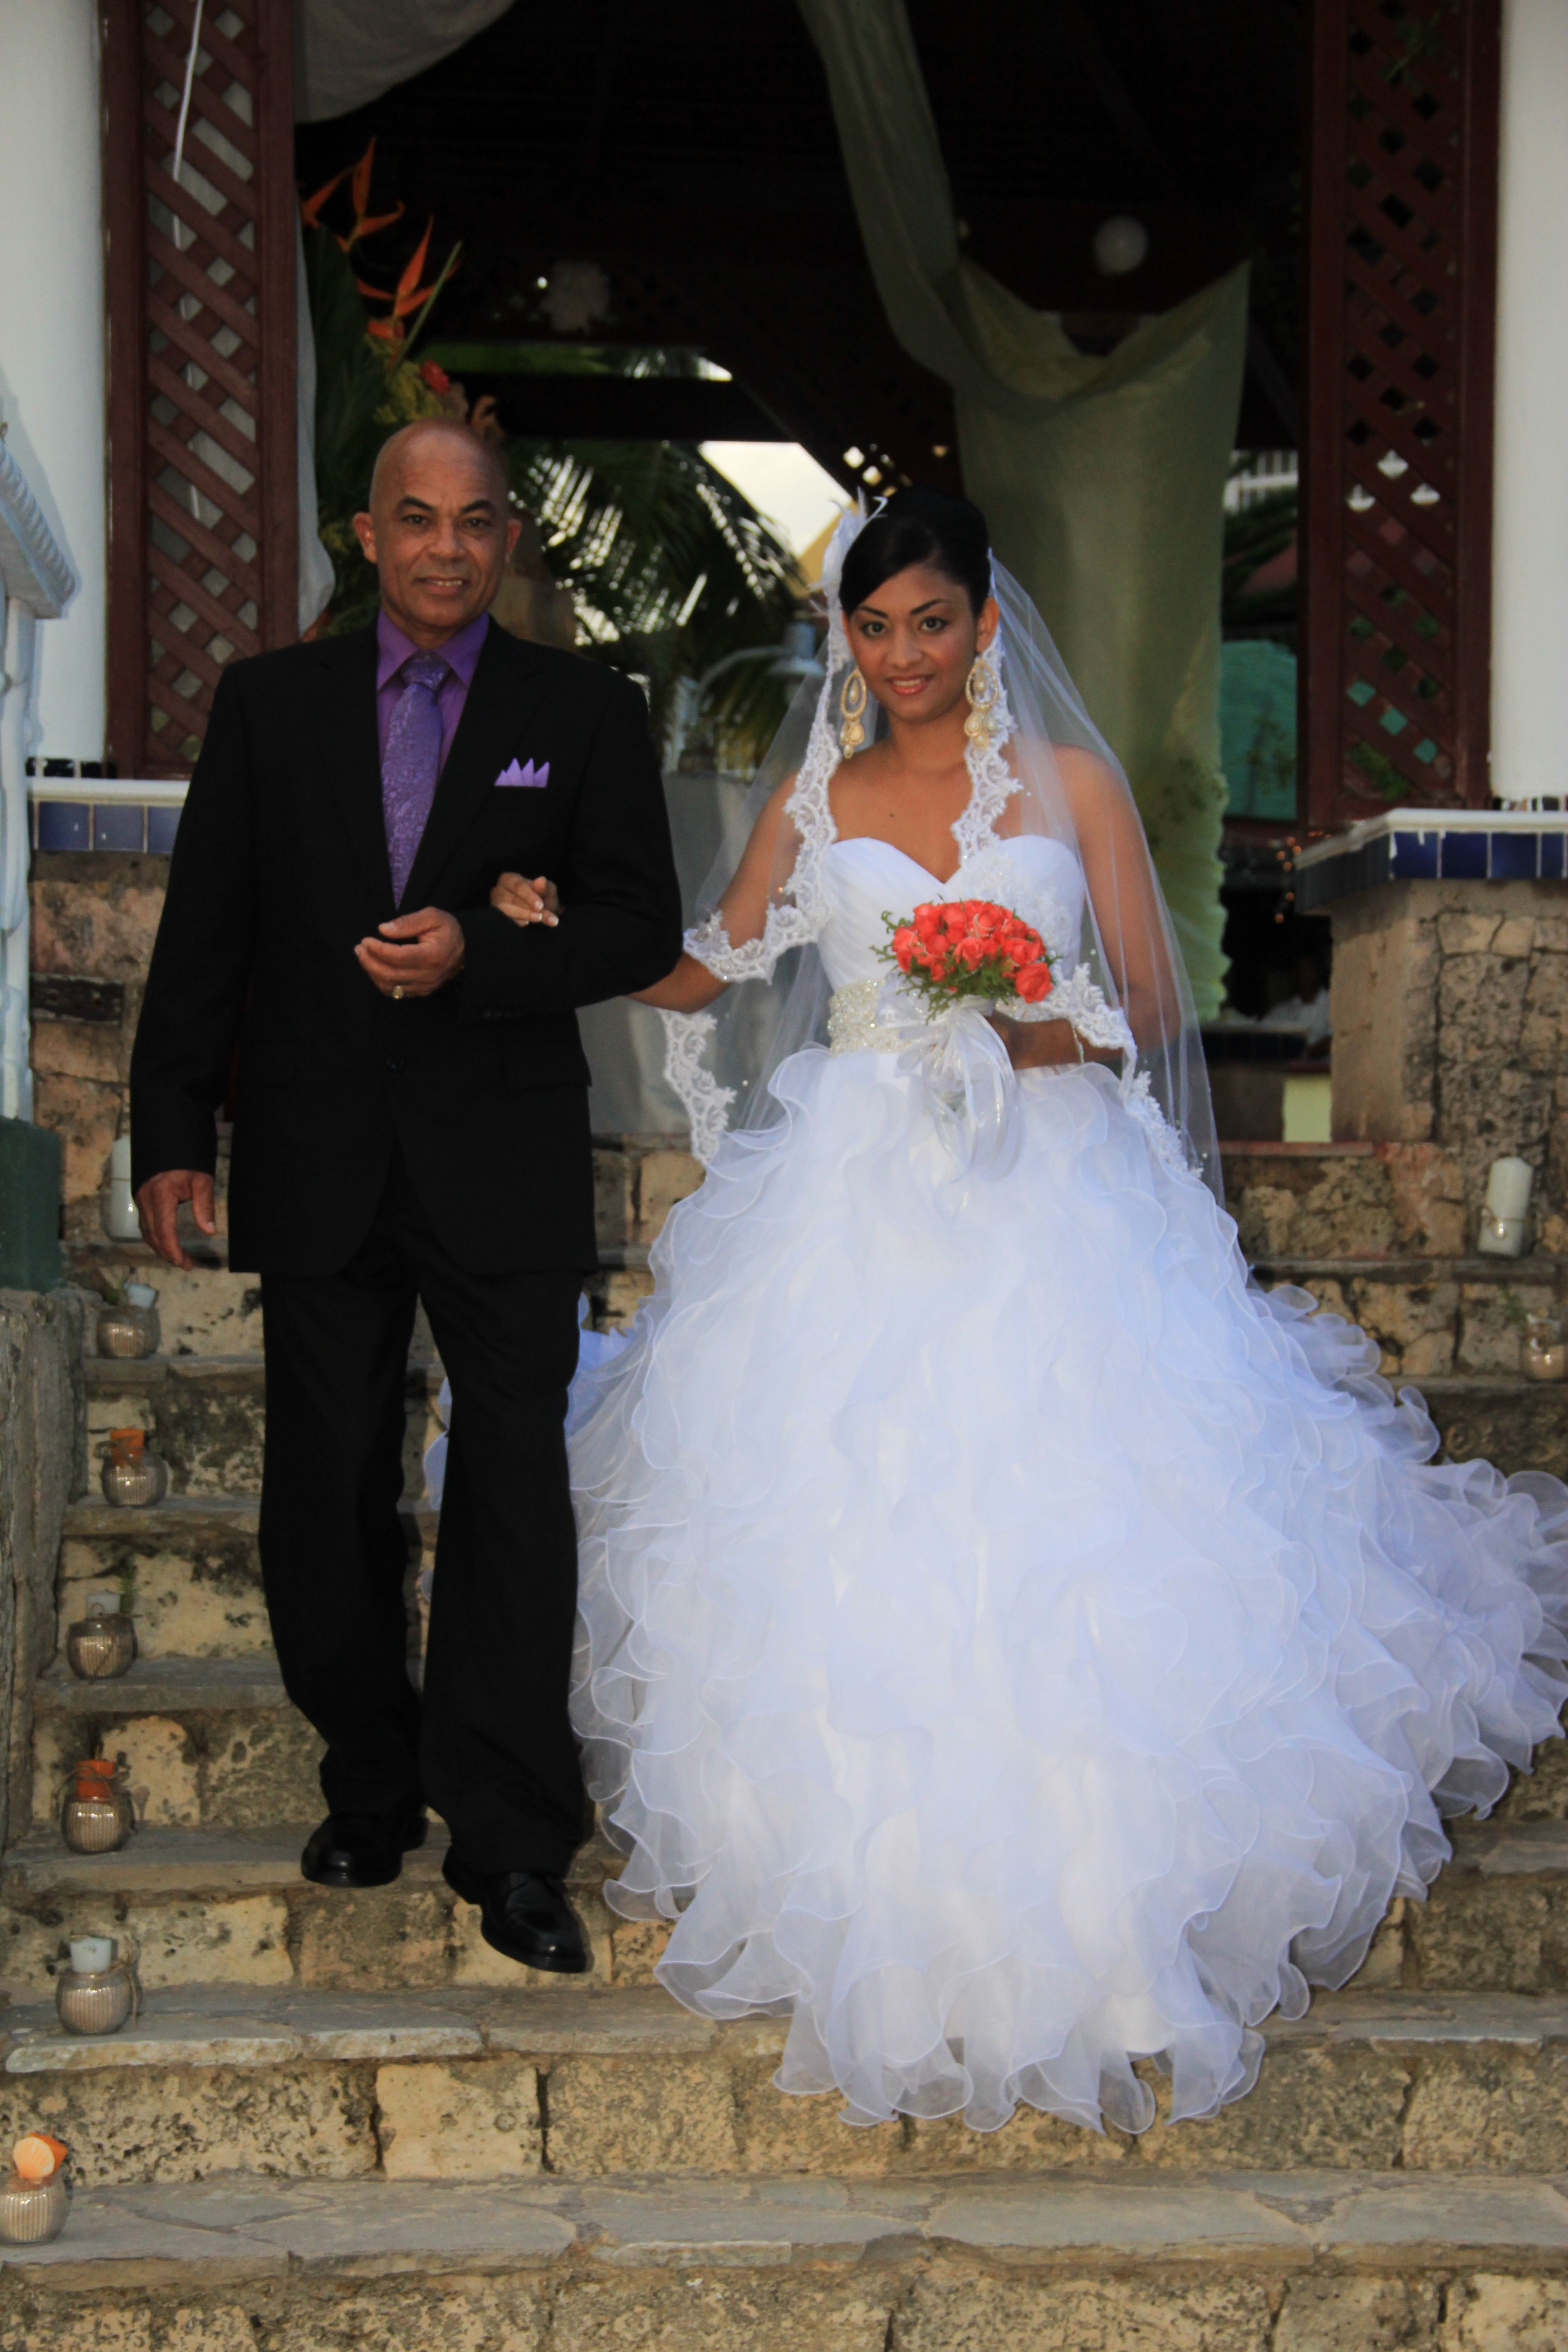 Pandora wedding dress real housewives  Proud dad with Bride on hand  Elizabeth  Miguel The Wedding